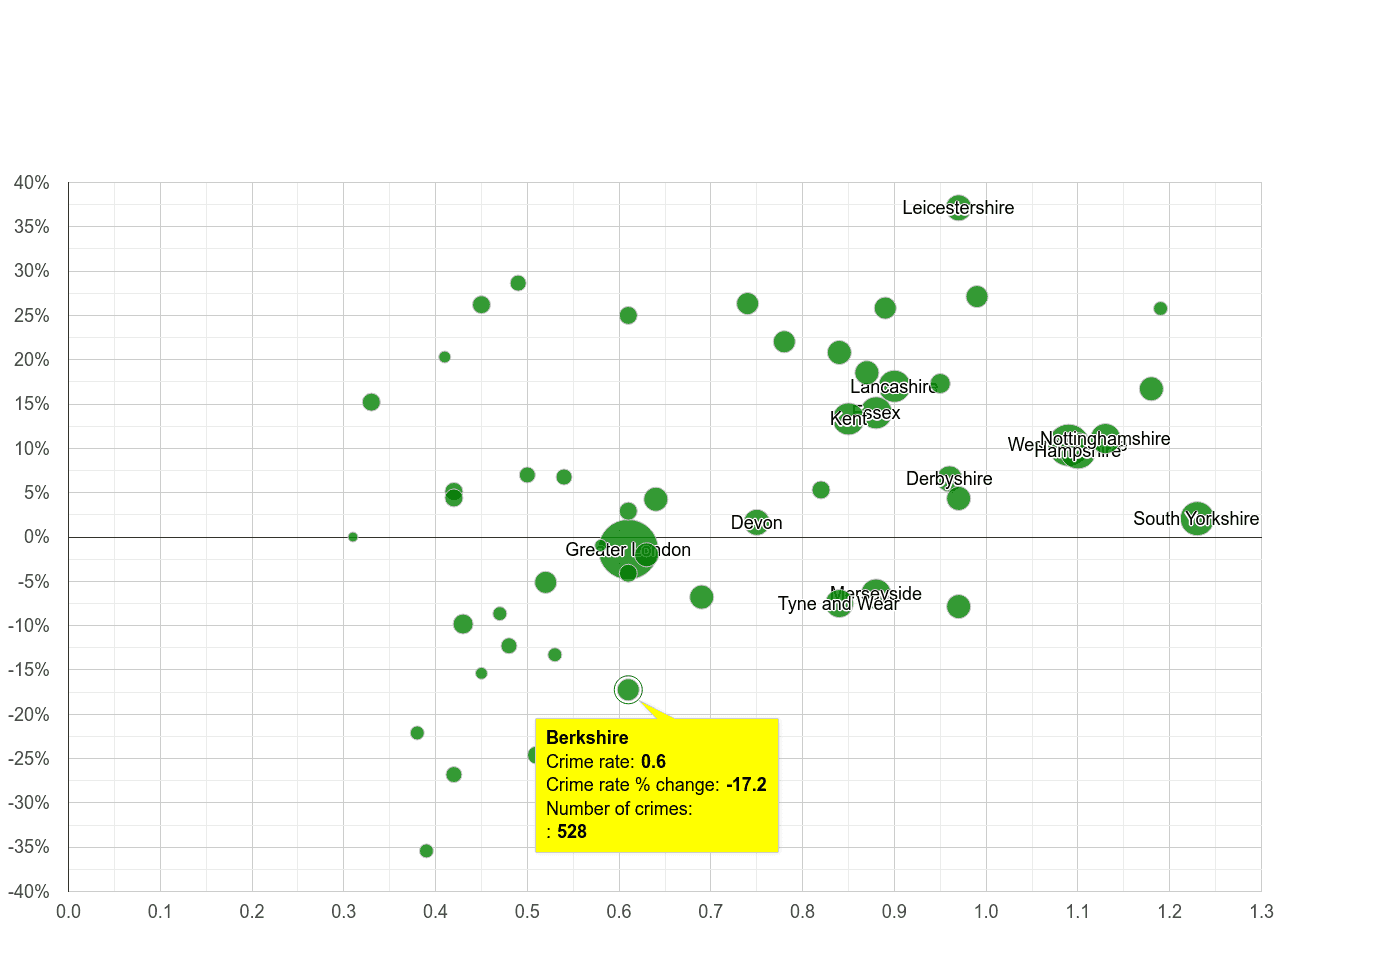 Berkshire possession of weapons crime rate compared to other counties